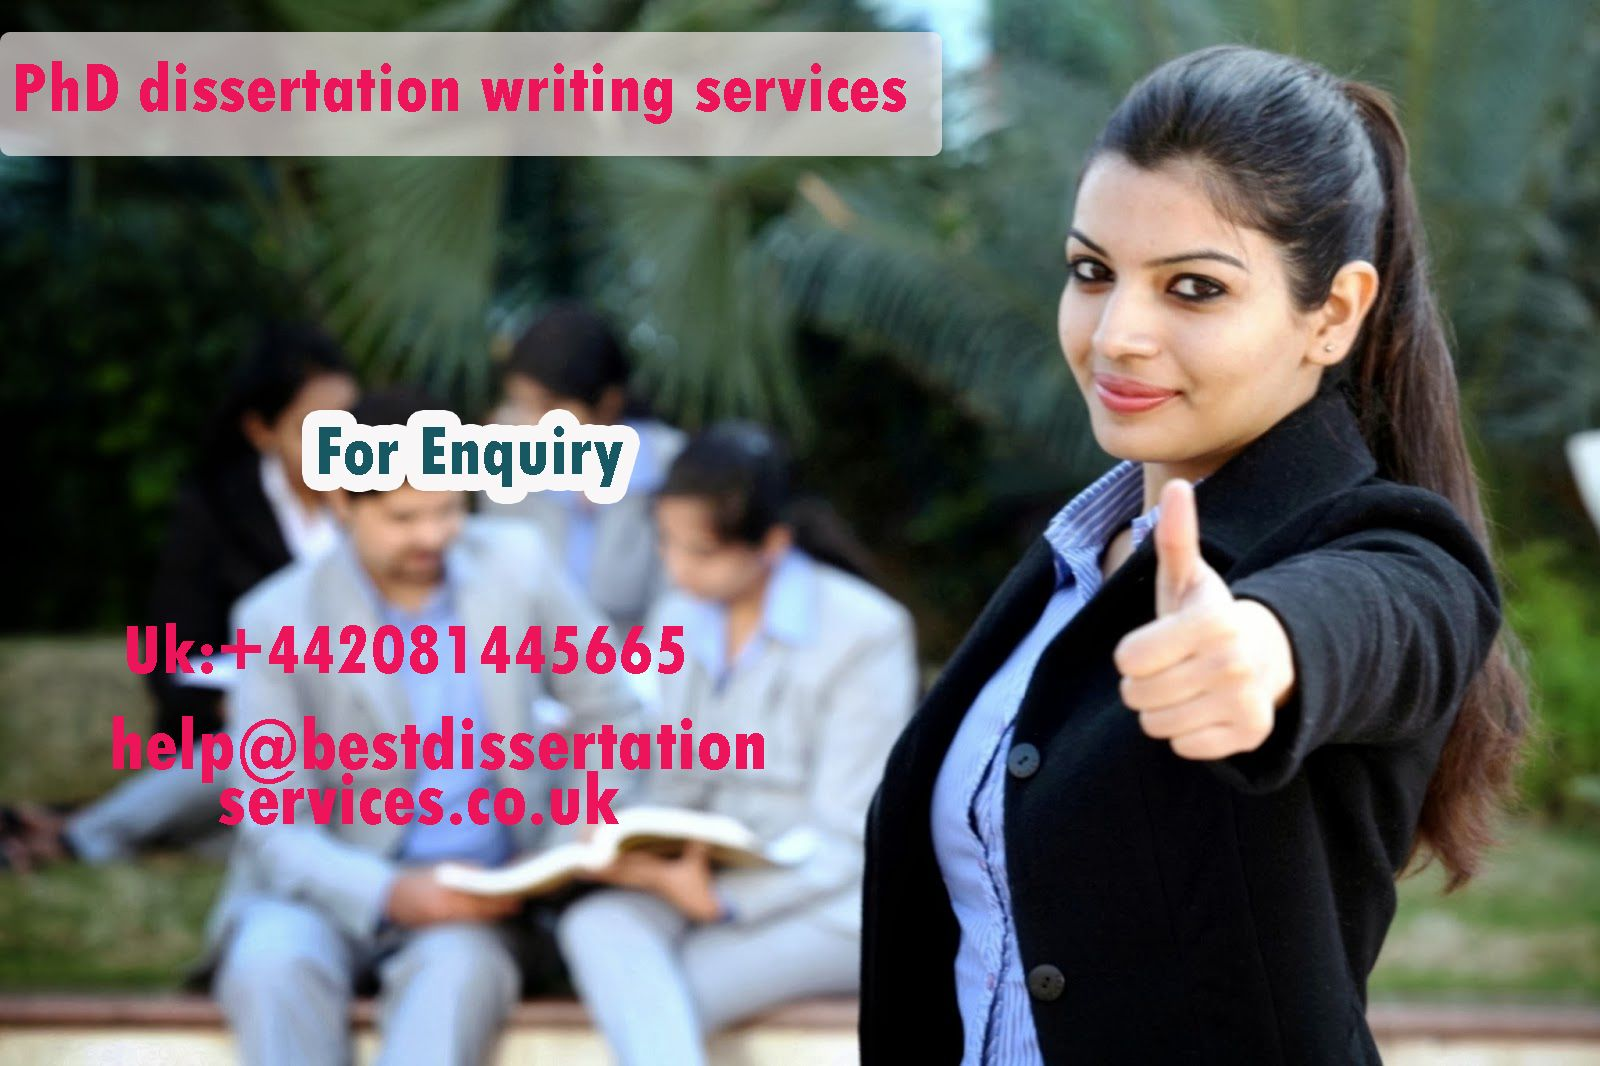 If you are writing doctoral dissertation, then you must